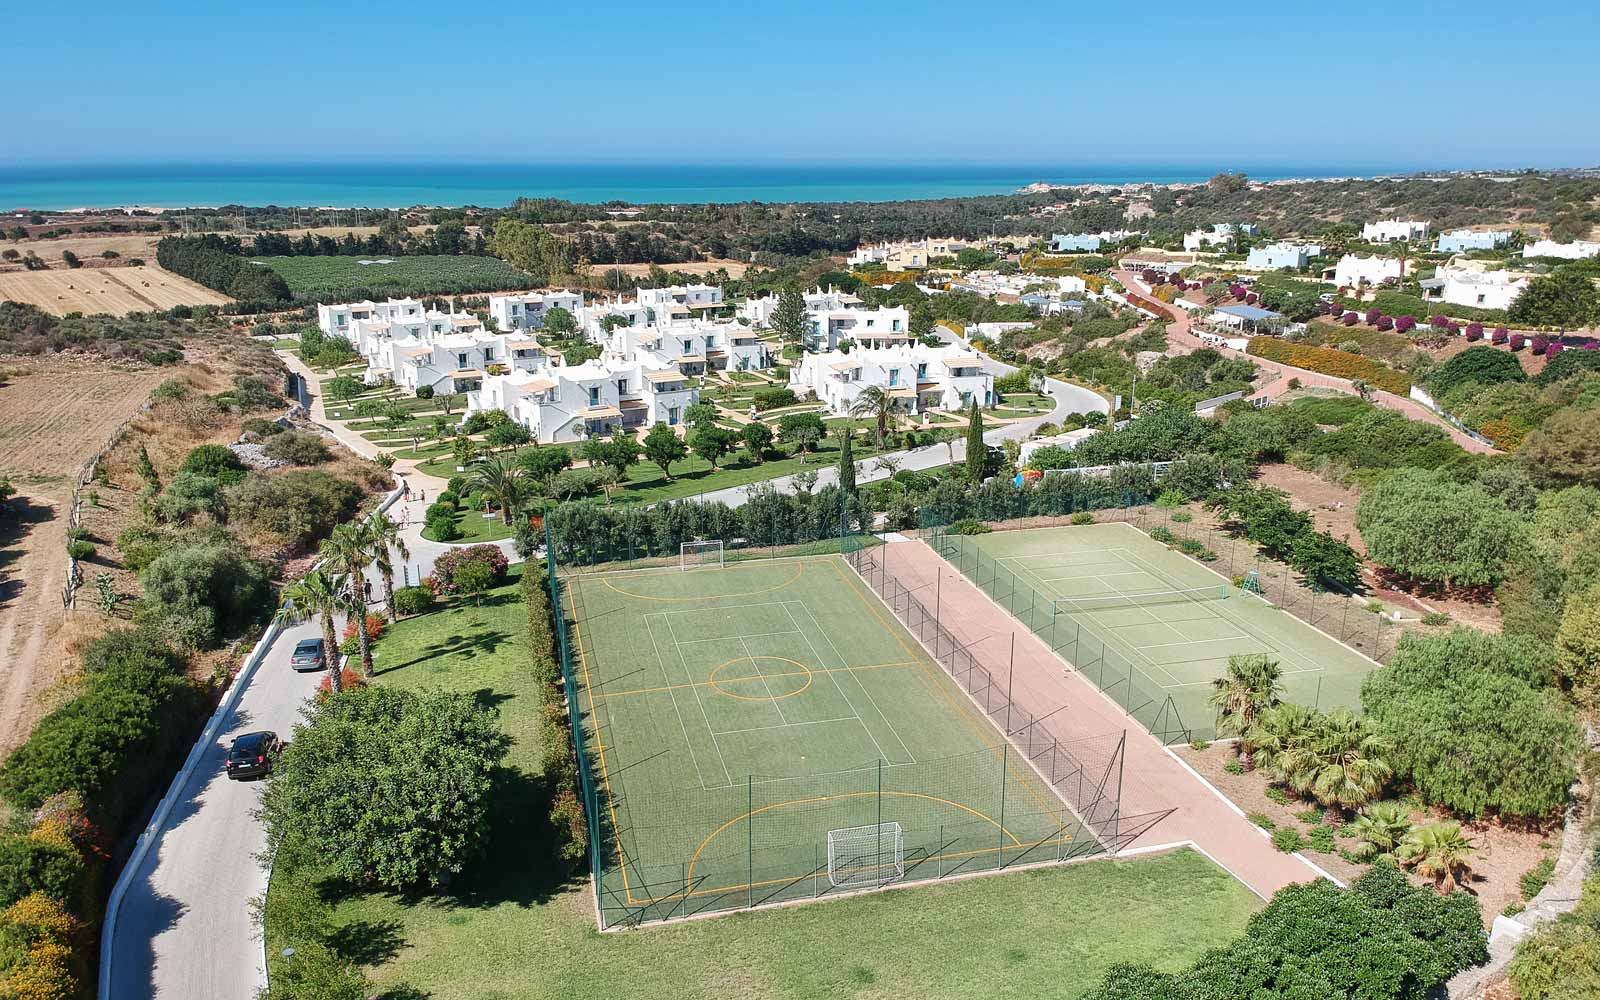 Voi Marsa Sicla' Resort Sports Courts